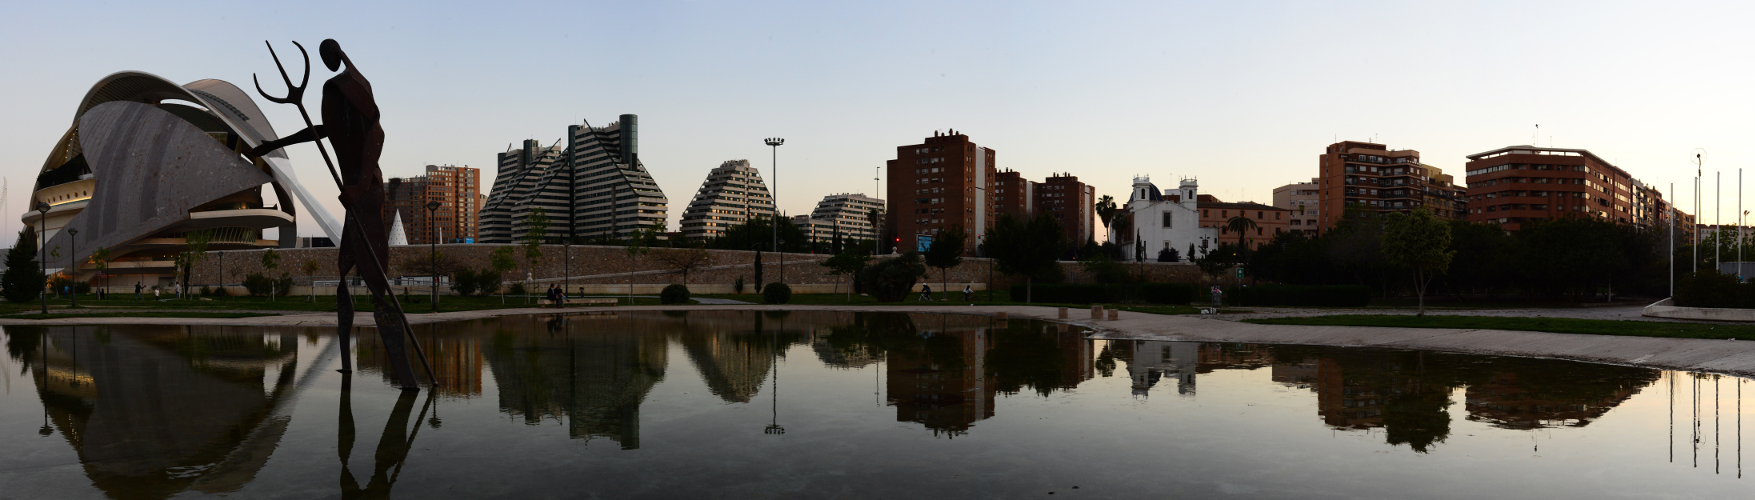 Neptune statue by Marta S. Gufstasson, panoramic of Valencia. Spain, Southwestern Europe.